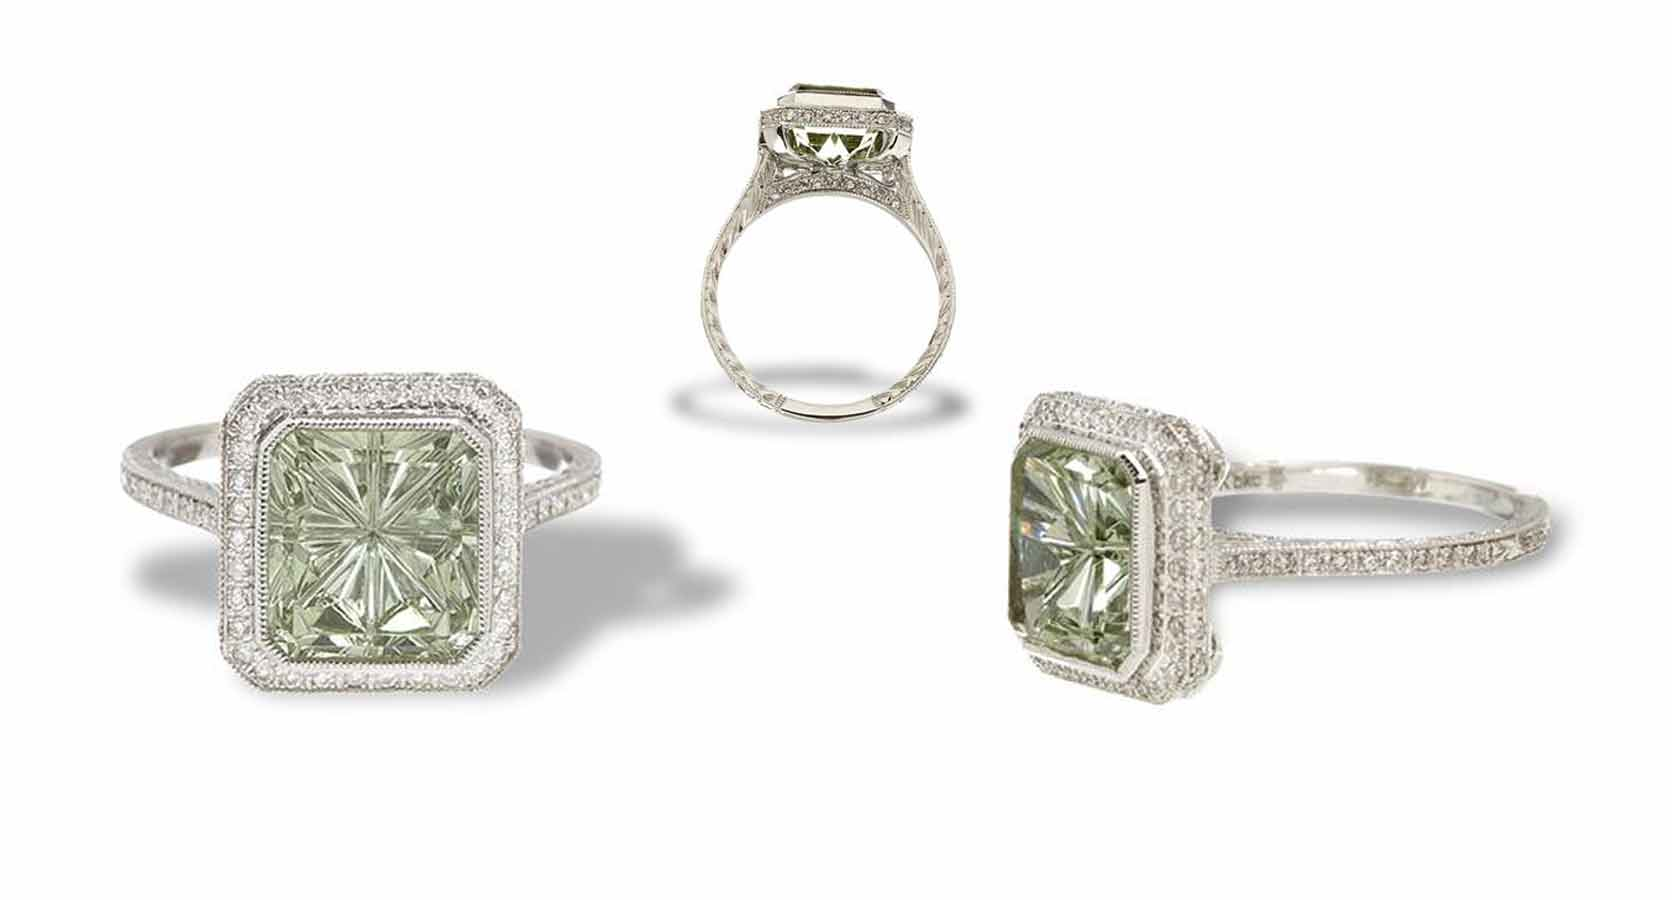 Green Beryl Ring In a Gold and Diamond mounting